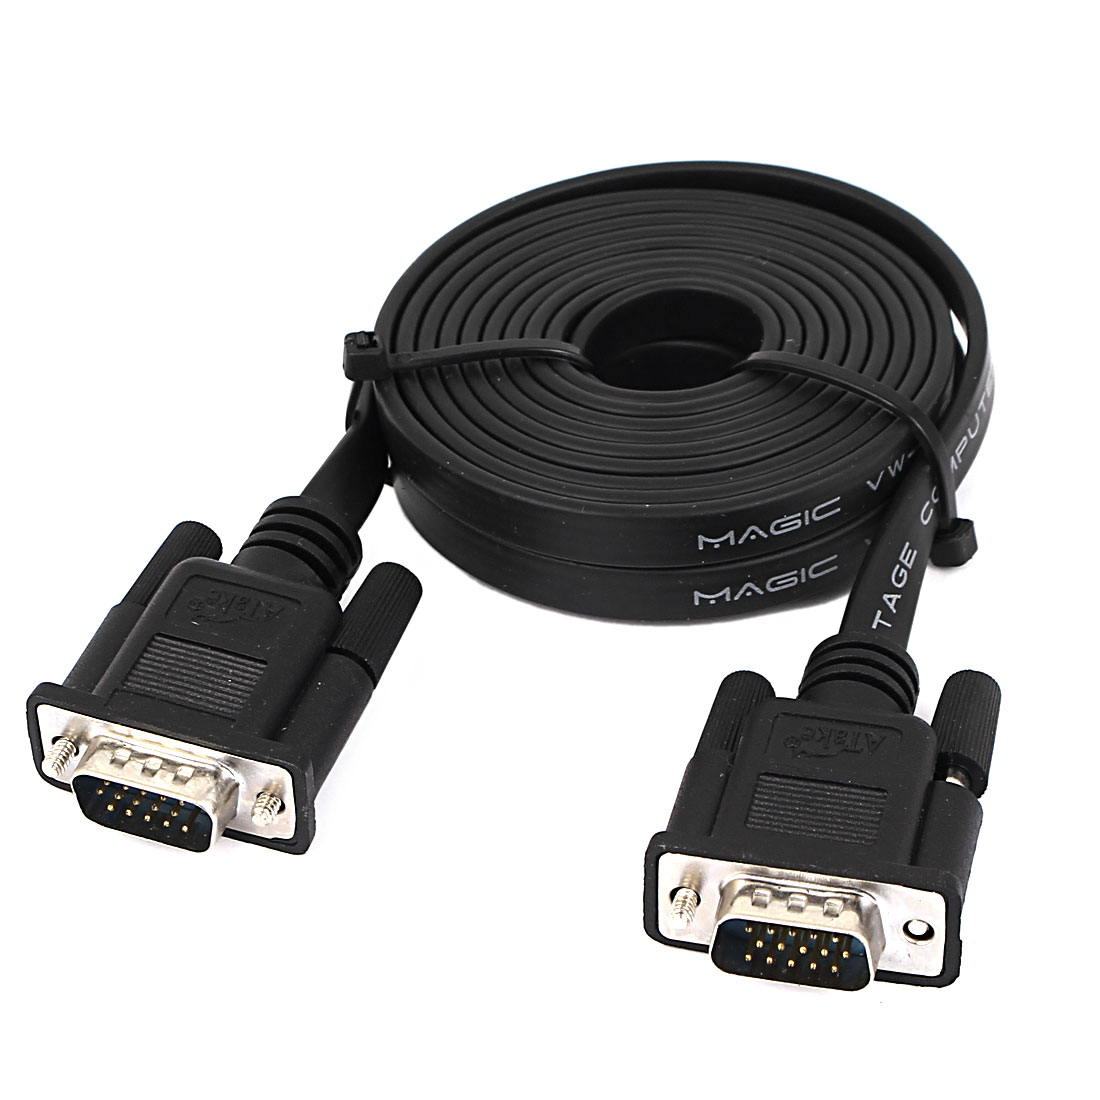 Unique Bargains 10Ft VGA 15 Pin Male to Male Flat Cable Adapter Monitor Extension Cord Black